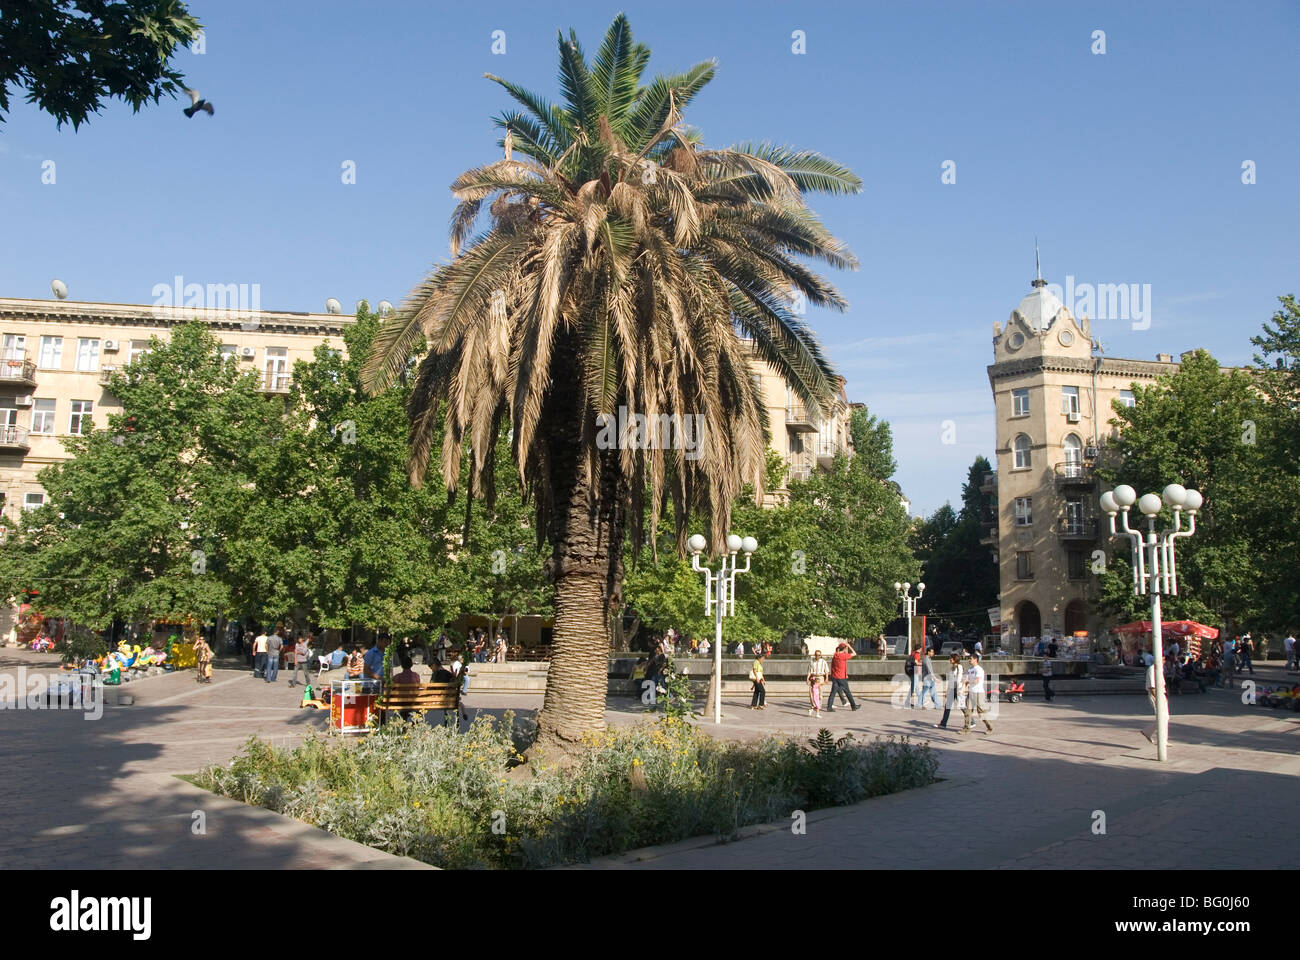 Fountains Square, the main open area in the middle of the city, Baku, Azerbaijan, Central Asia, Asia - Stock Image